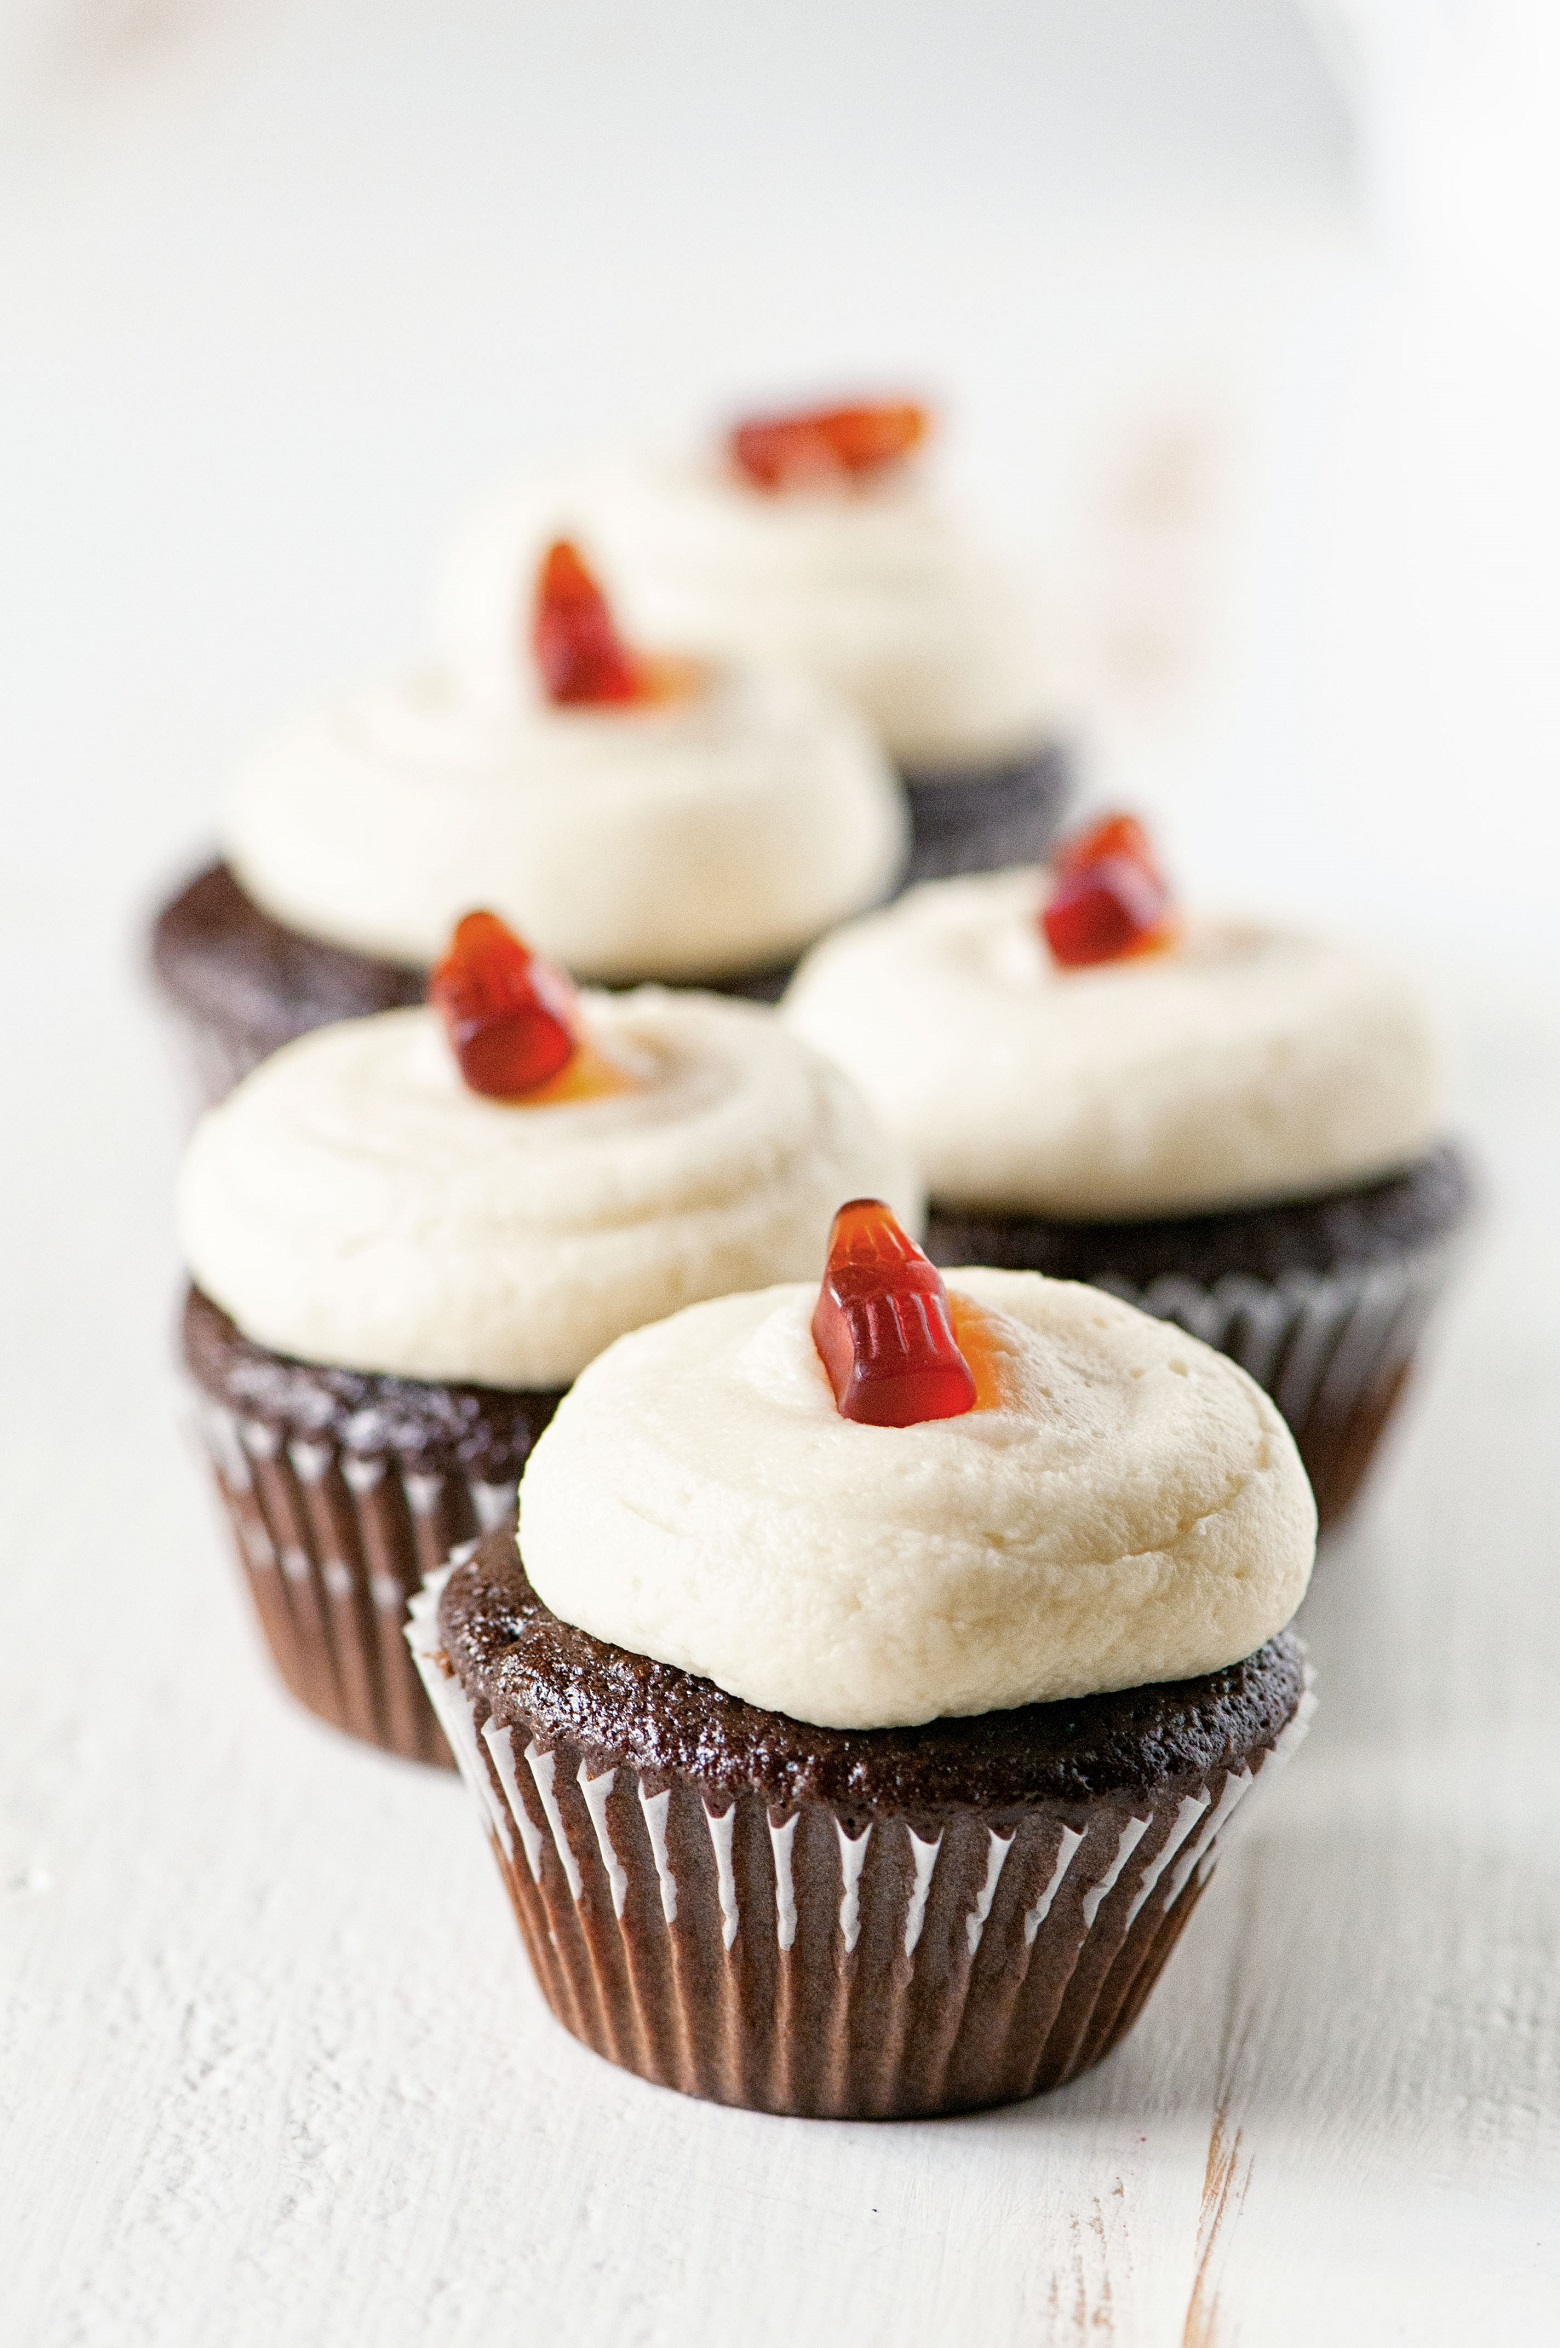 jack-and-coke-cupcakes-002